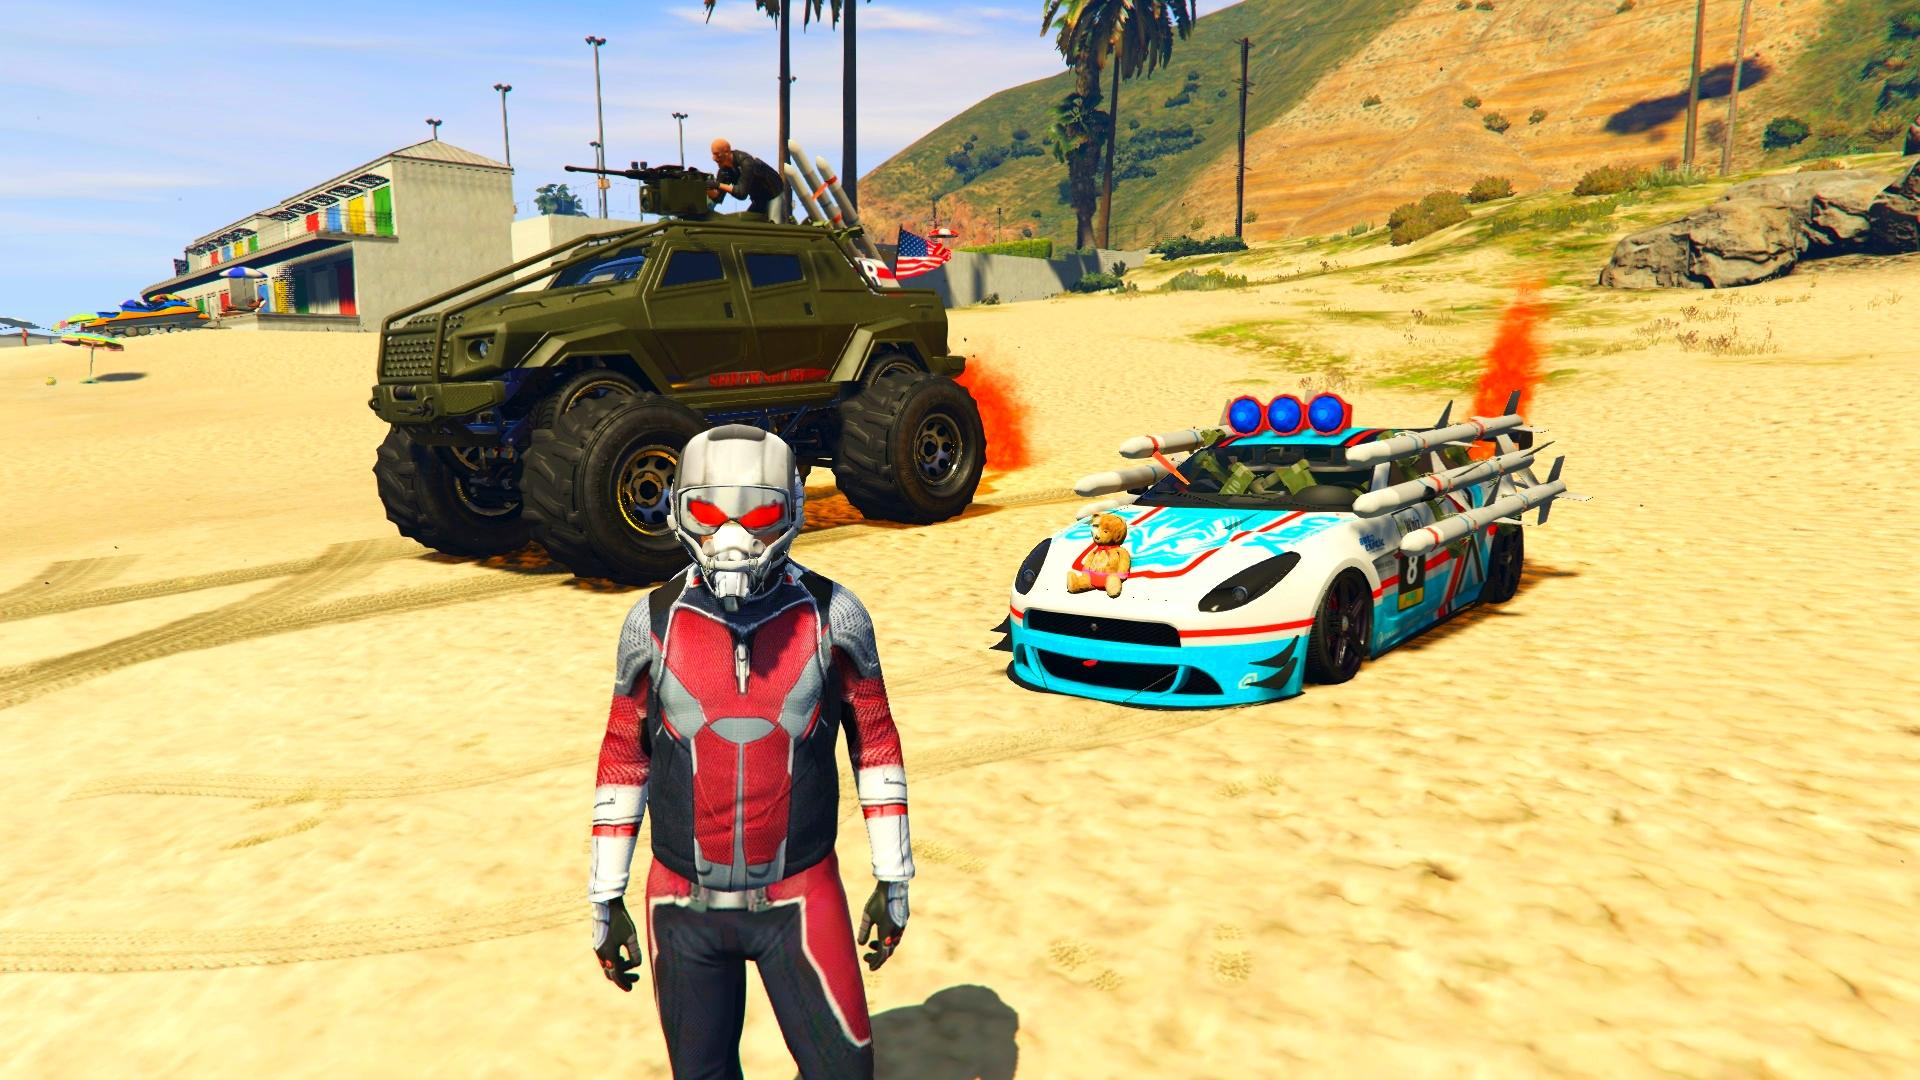 Gta 5 Best Vehicle Mods in addition 2300292 2 as well 46944 Gta 5 Zentorno Ivf furthermore 76323 Progen T20 as well 61757 Gta V Imponte Phoenix. on gta 4 5 mod